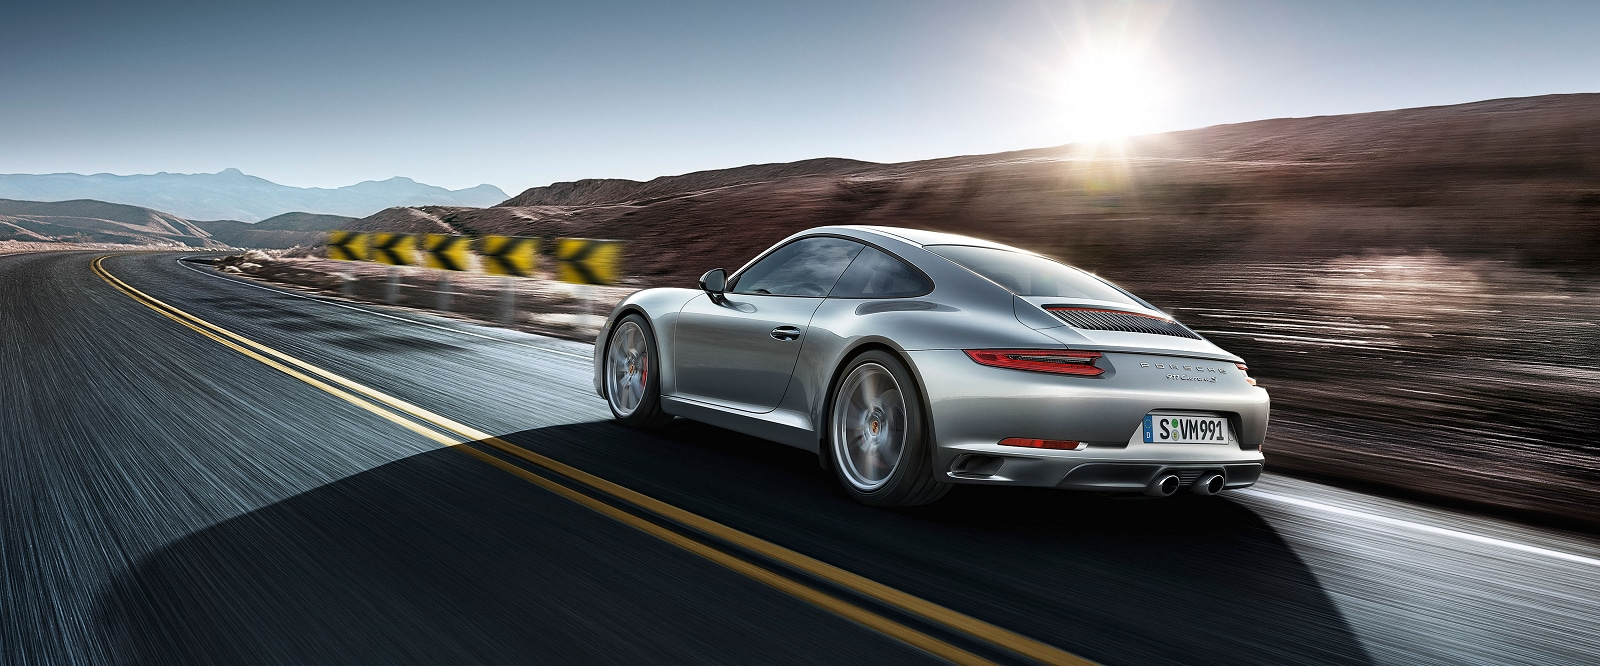 2019 Porsche 911 Carrera S Coupe for sale in Norwalk, CA